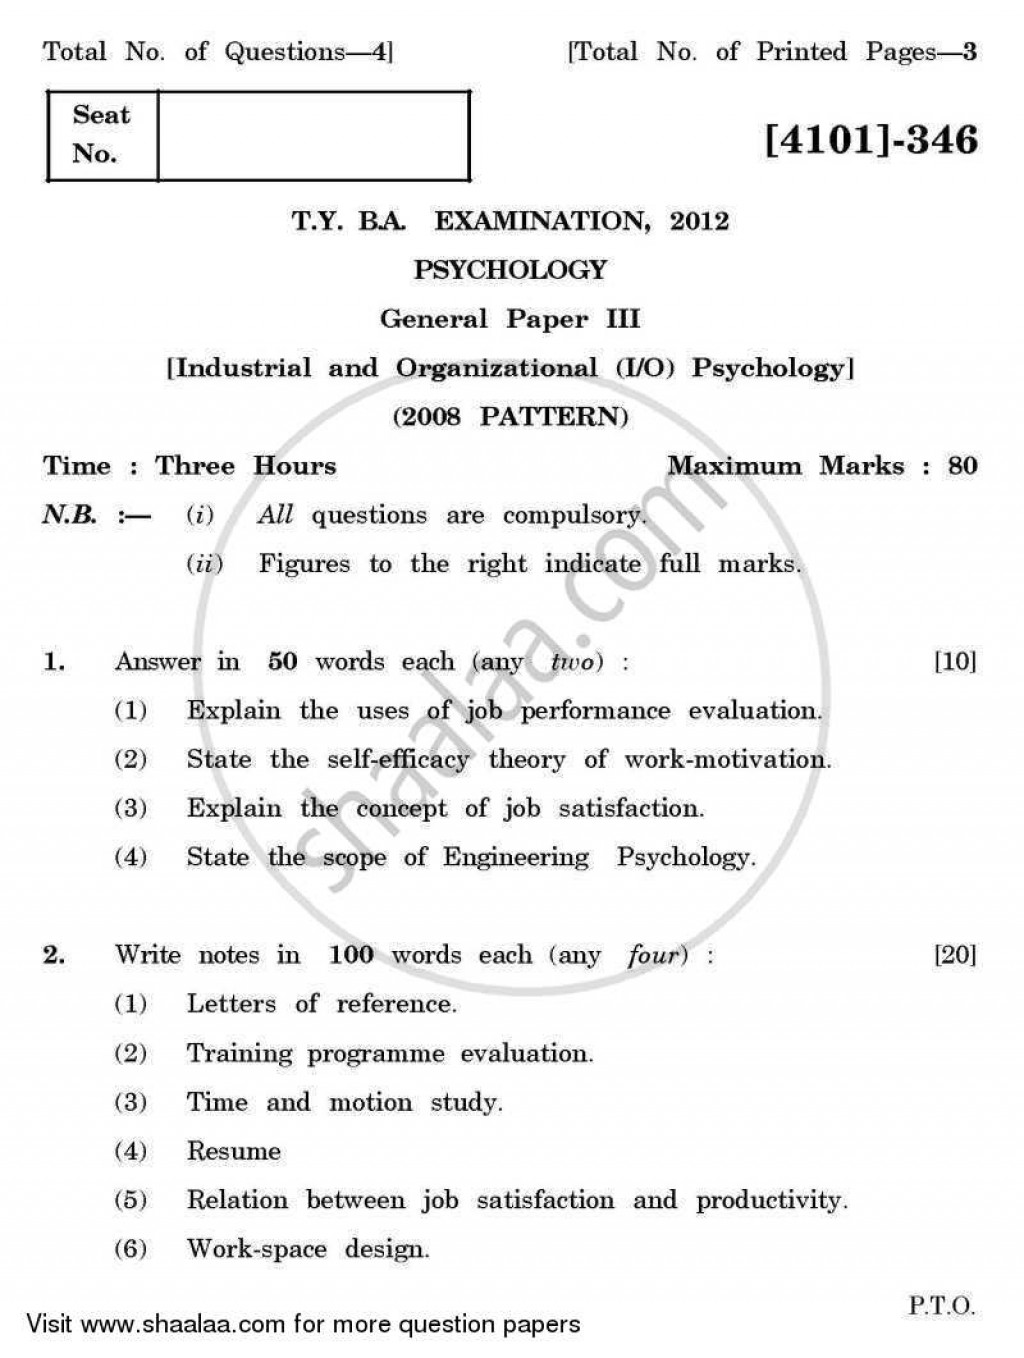 015 Research Papers For Psychology Paper University Of Pune Bachelor General Industrial Organizational Tyba 3rd Year 2011 2423148fb186f44d8a12cf9 Fascinating Dreams Topics Social Large